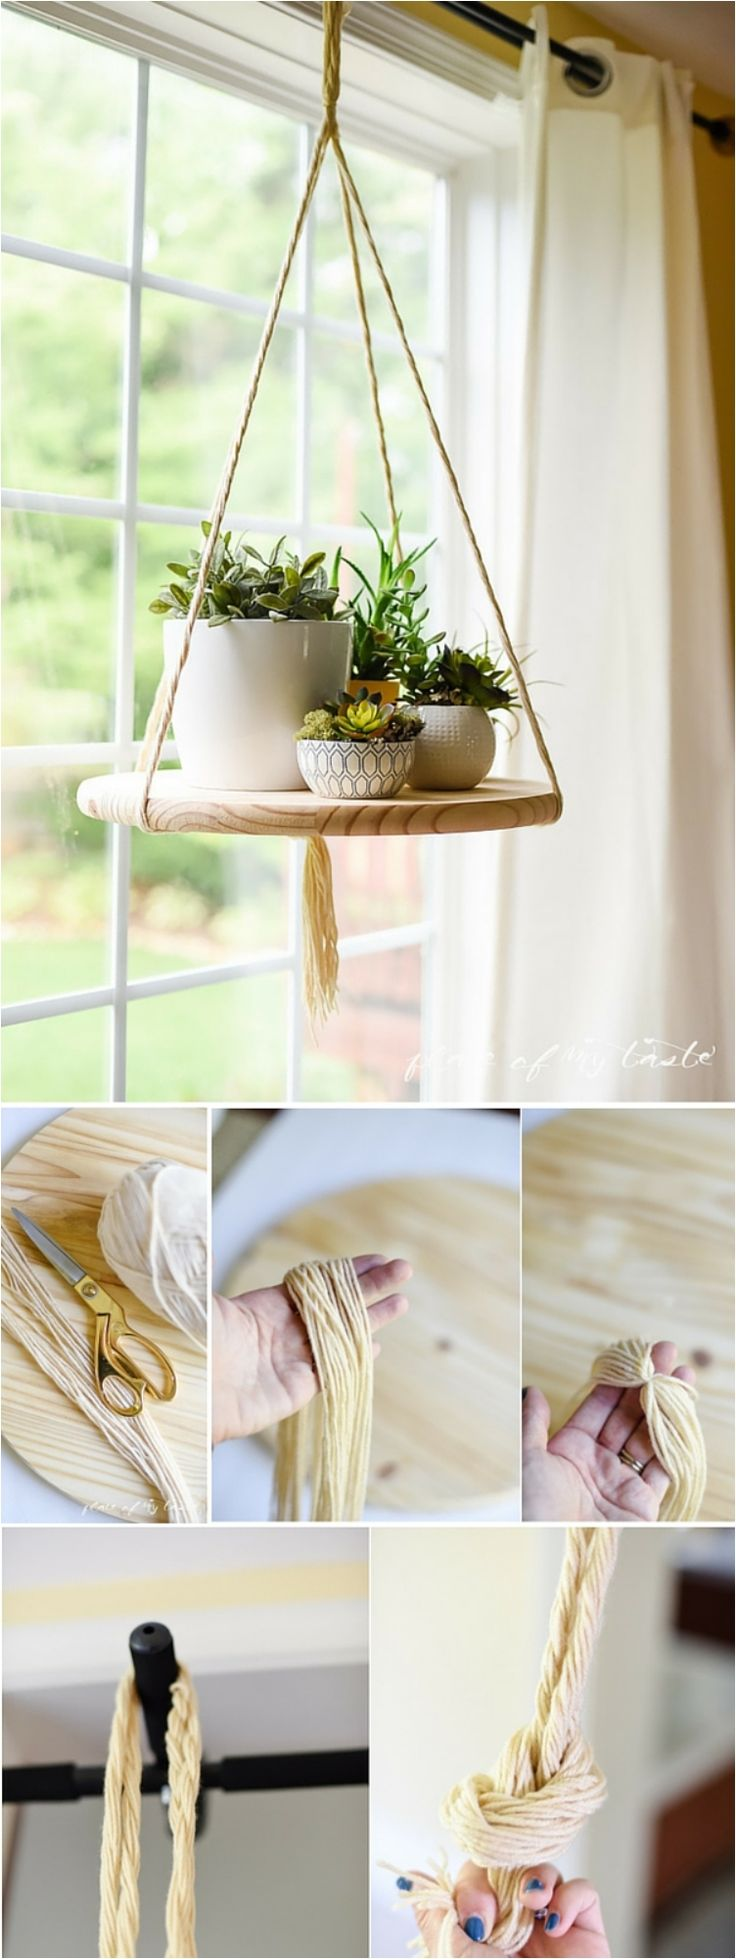 31 DIY Hanging Shelves Perfect for Every Room in Your Home